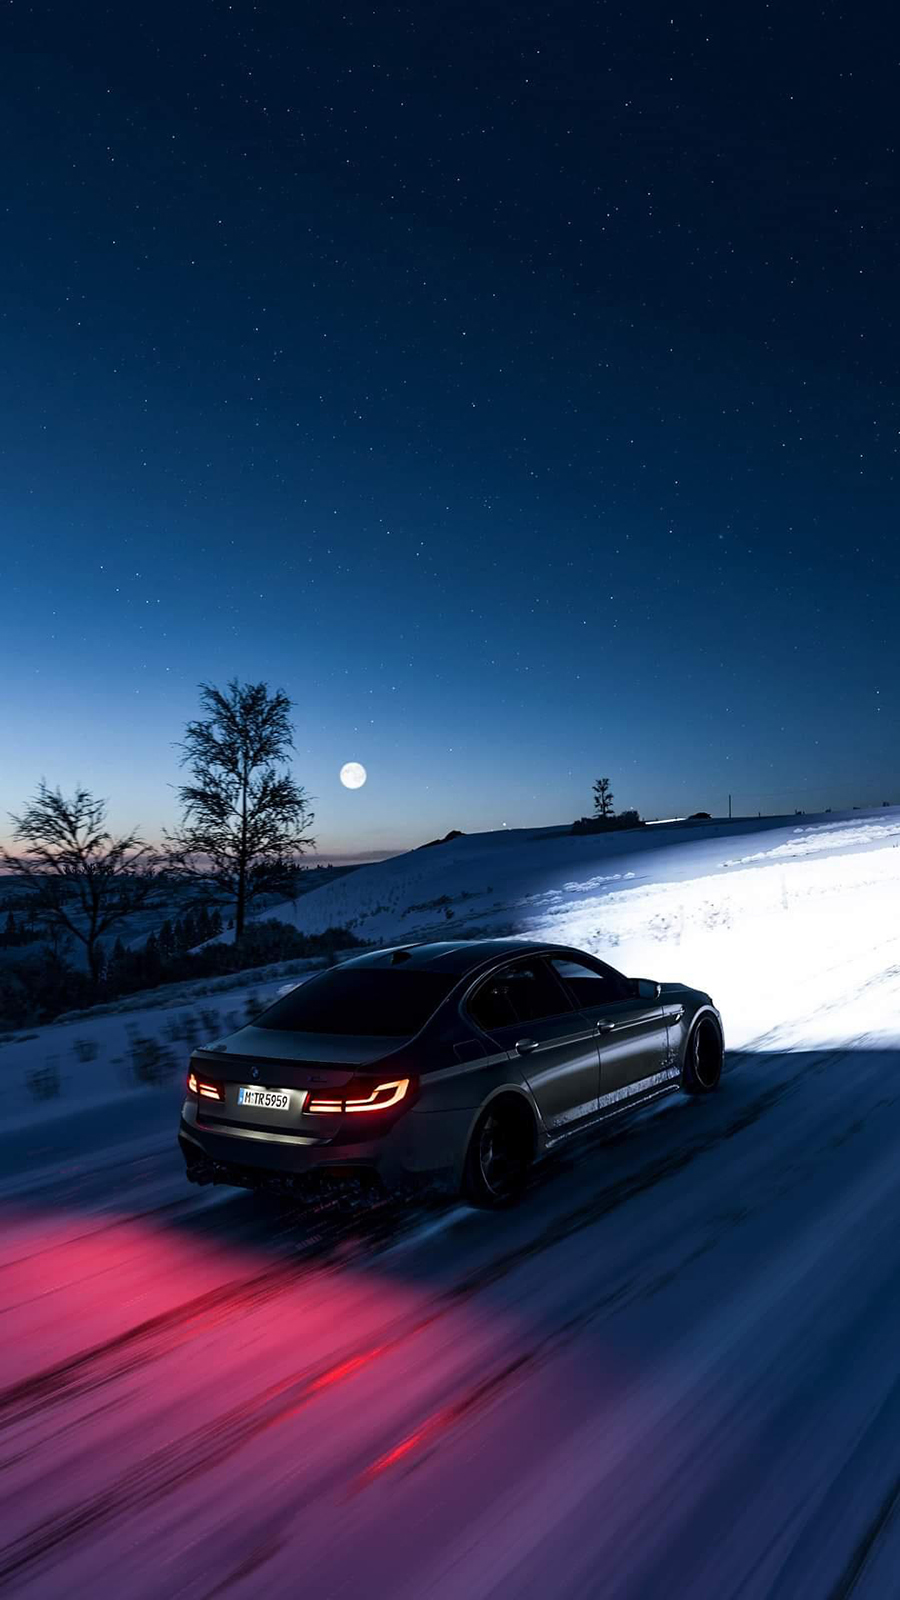 BMW Wallpaper – Most Popular BMW Wallpapers Free Download